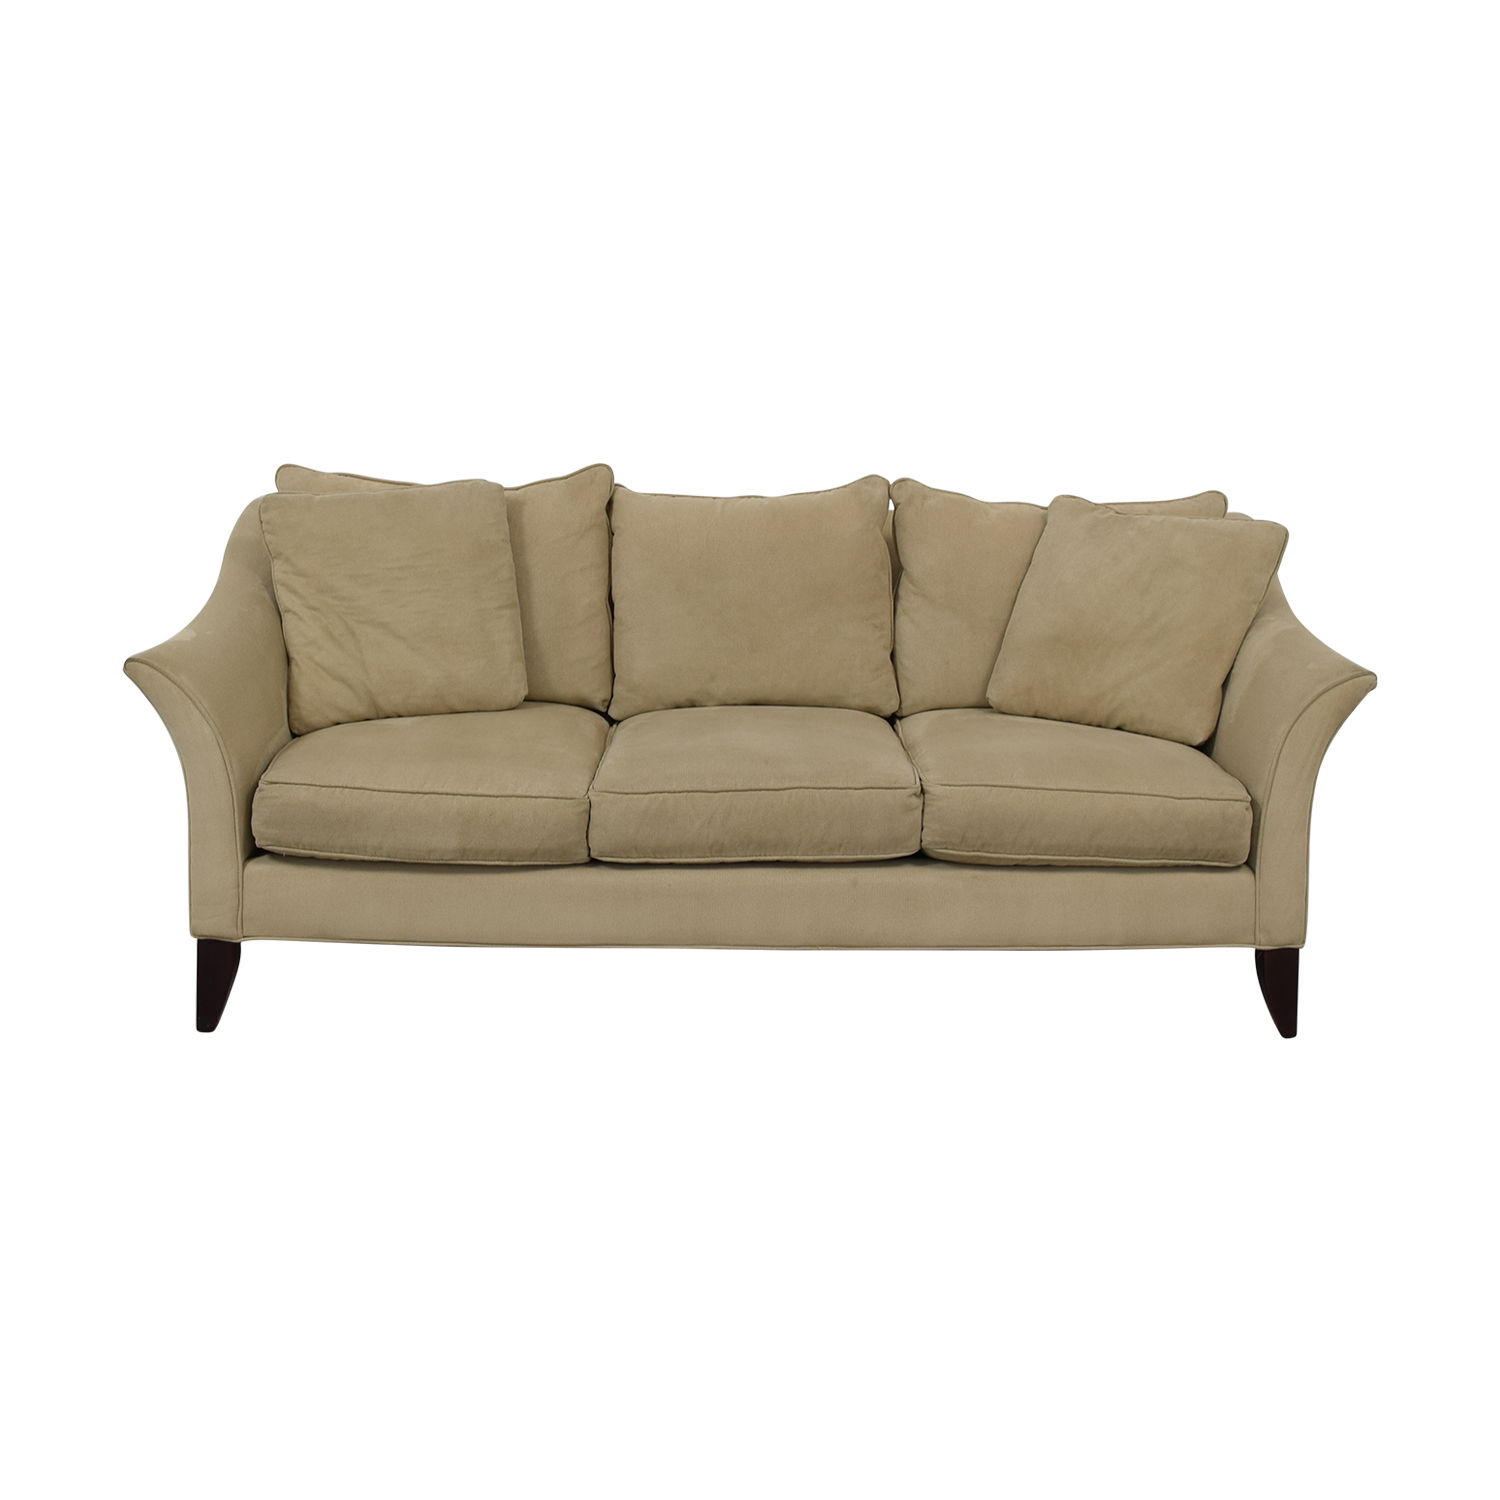 Maurice Villency Three Seater Sofa sale